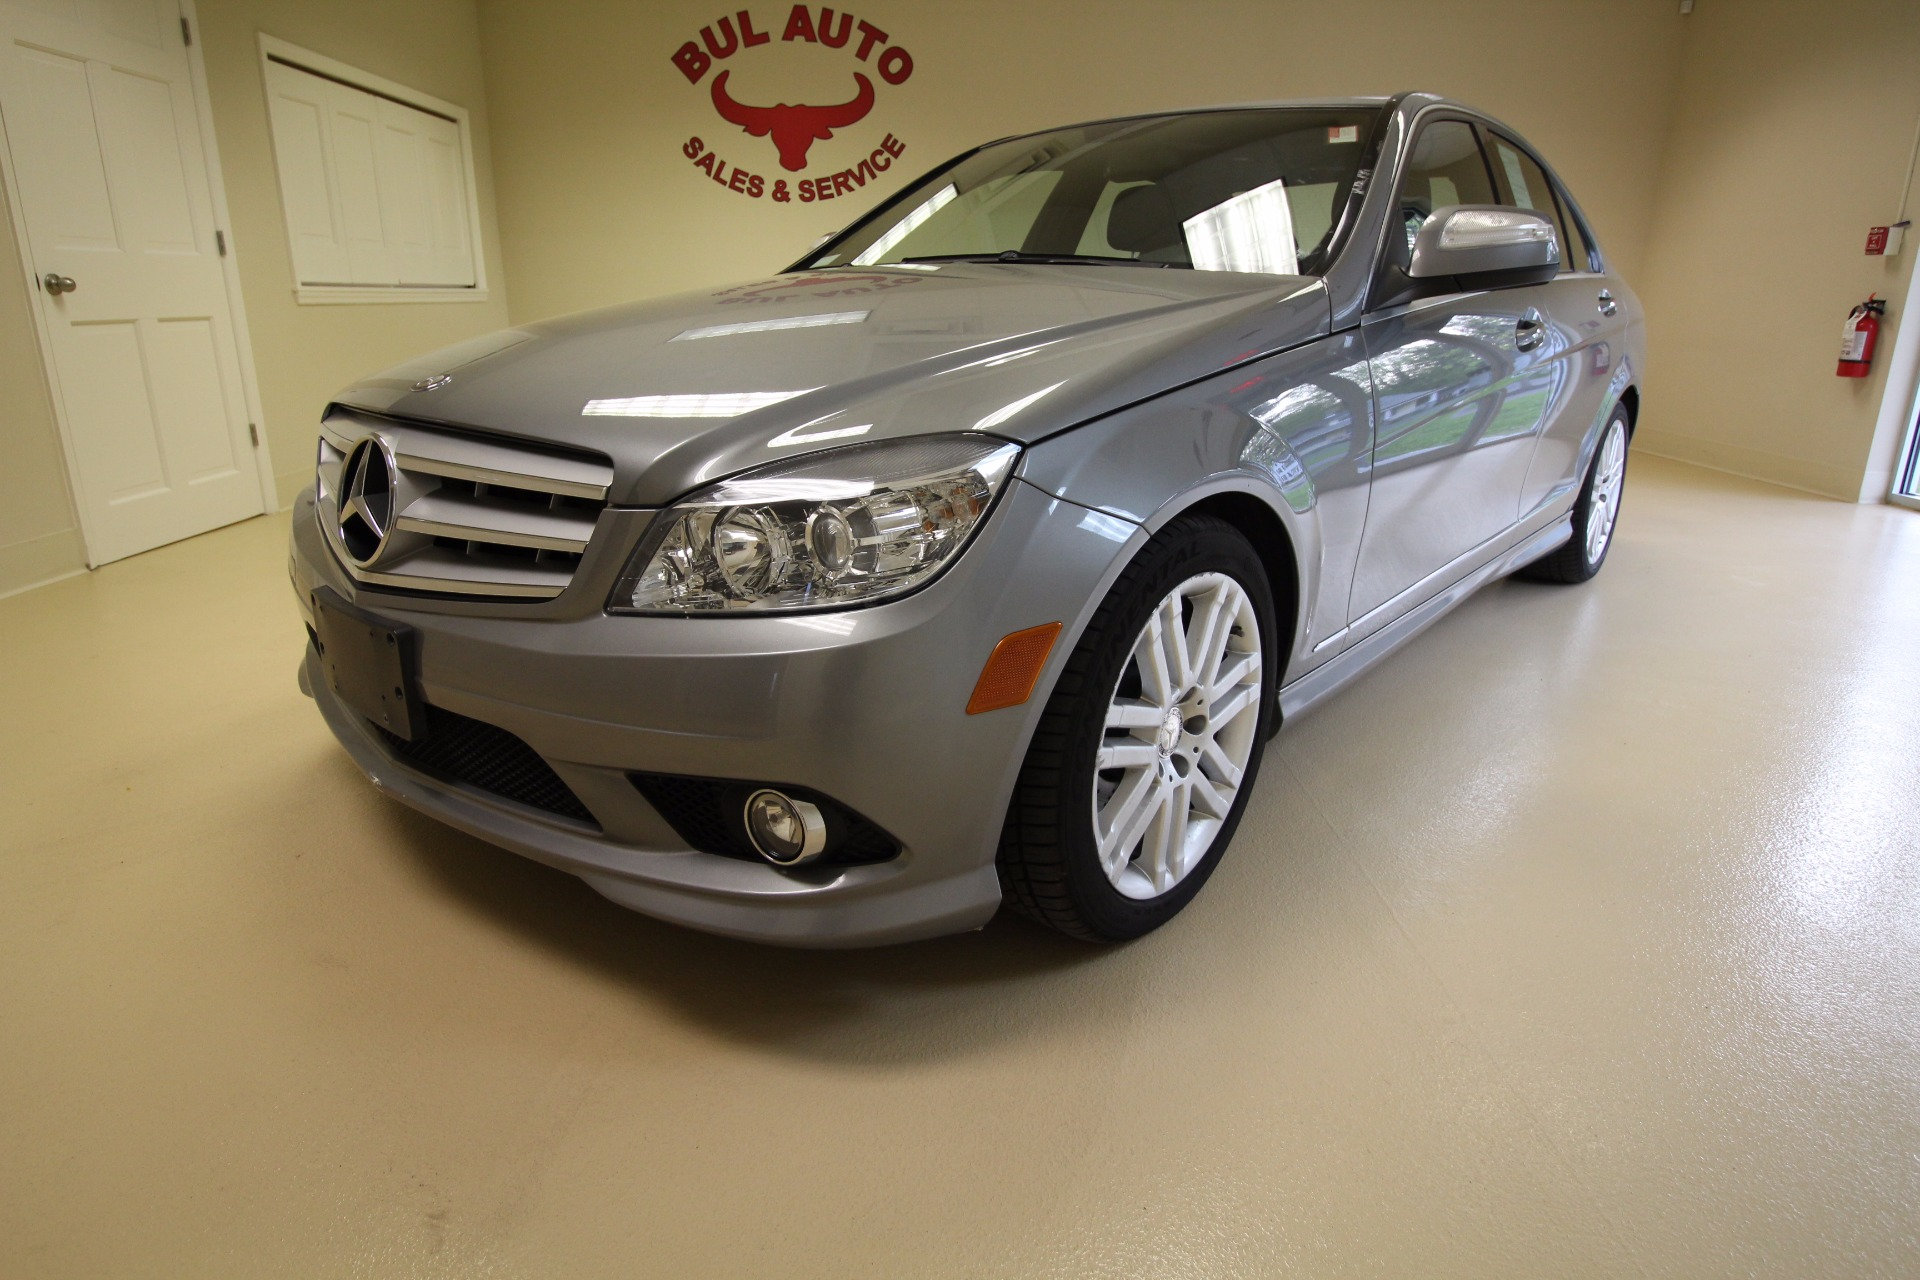 2009 mercedes benz c class c300 4matic sport sedan stock 17105 for sale near albany ny ny. Black Bedroom Furniture Sets. Home Design Ideas